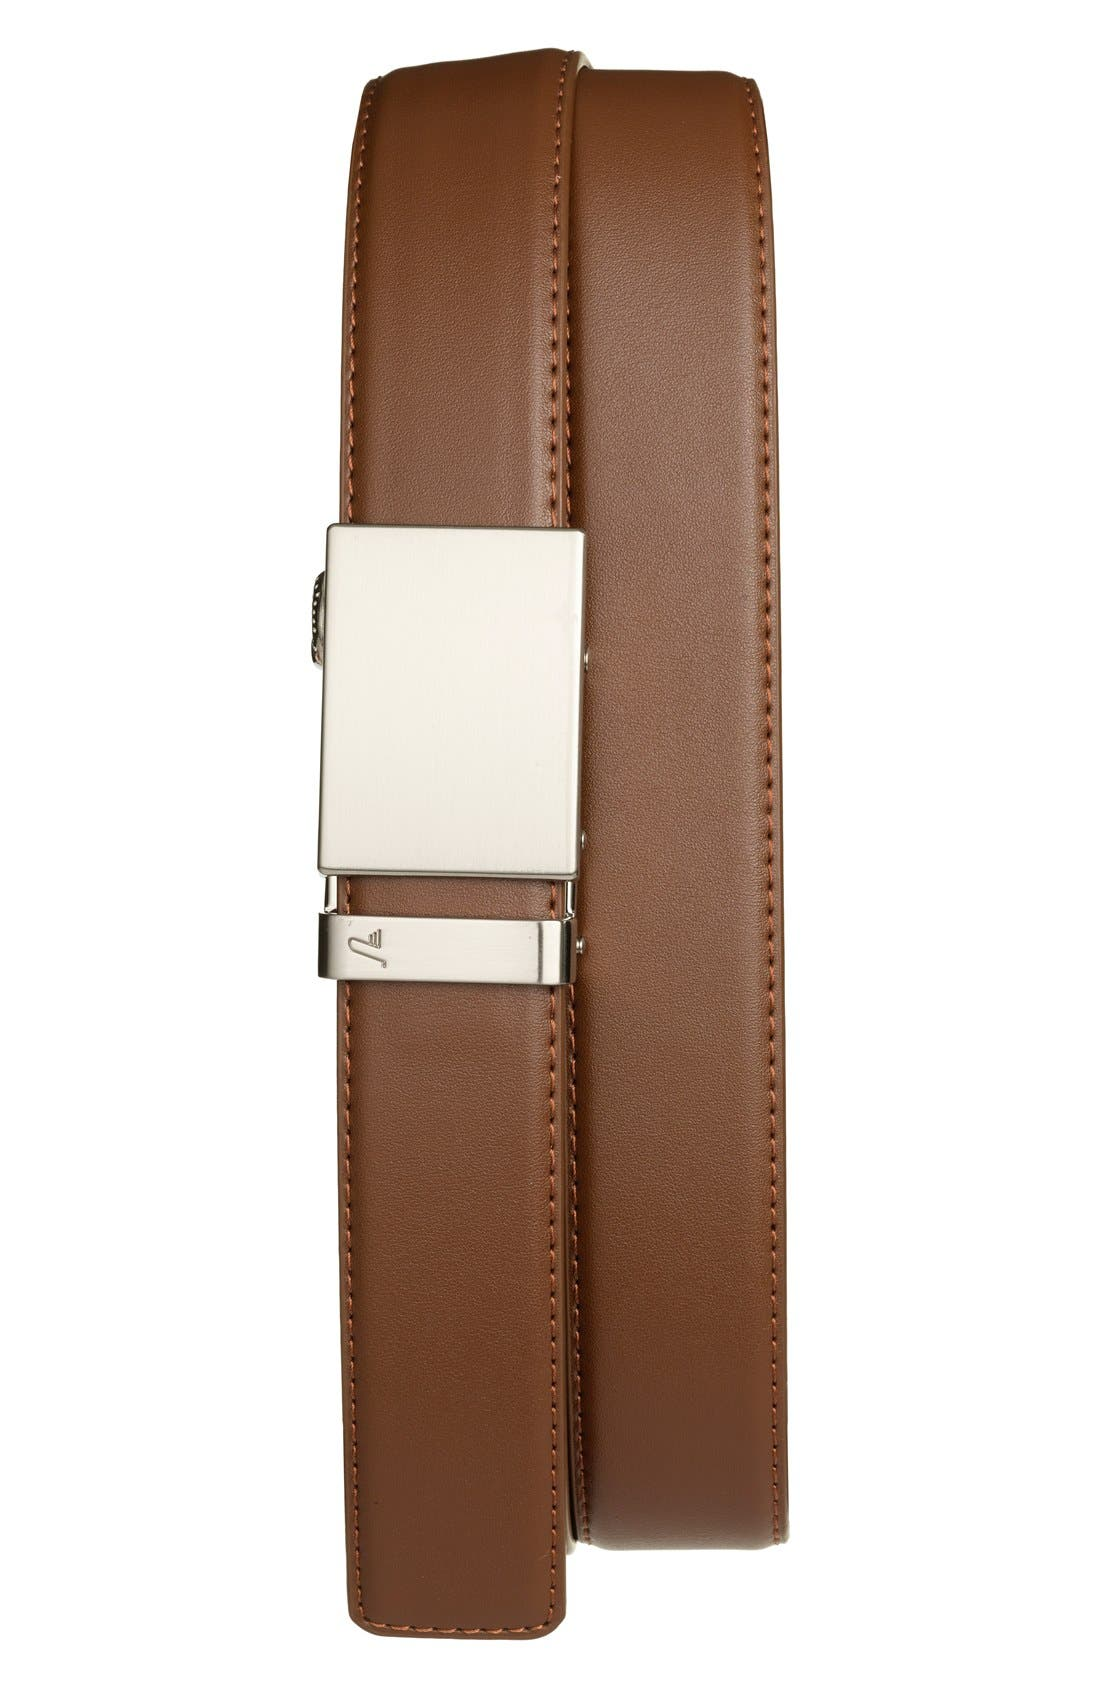 Mission Belt 'Steel' Leather Belt